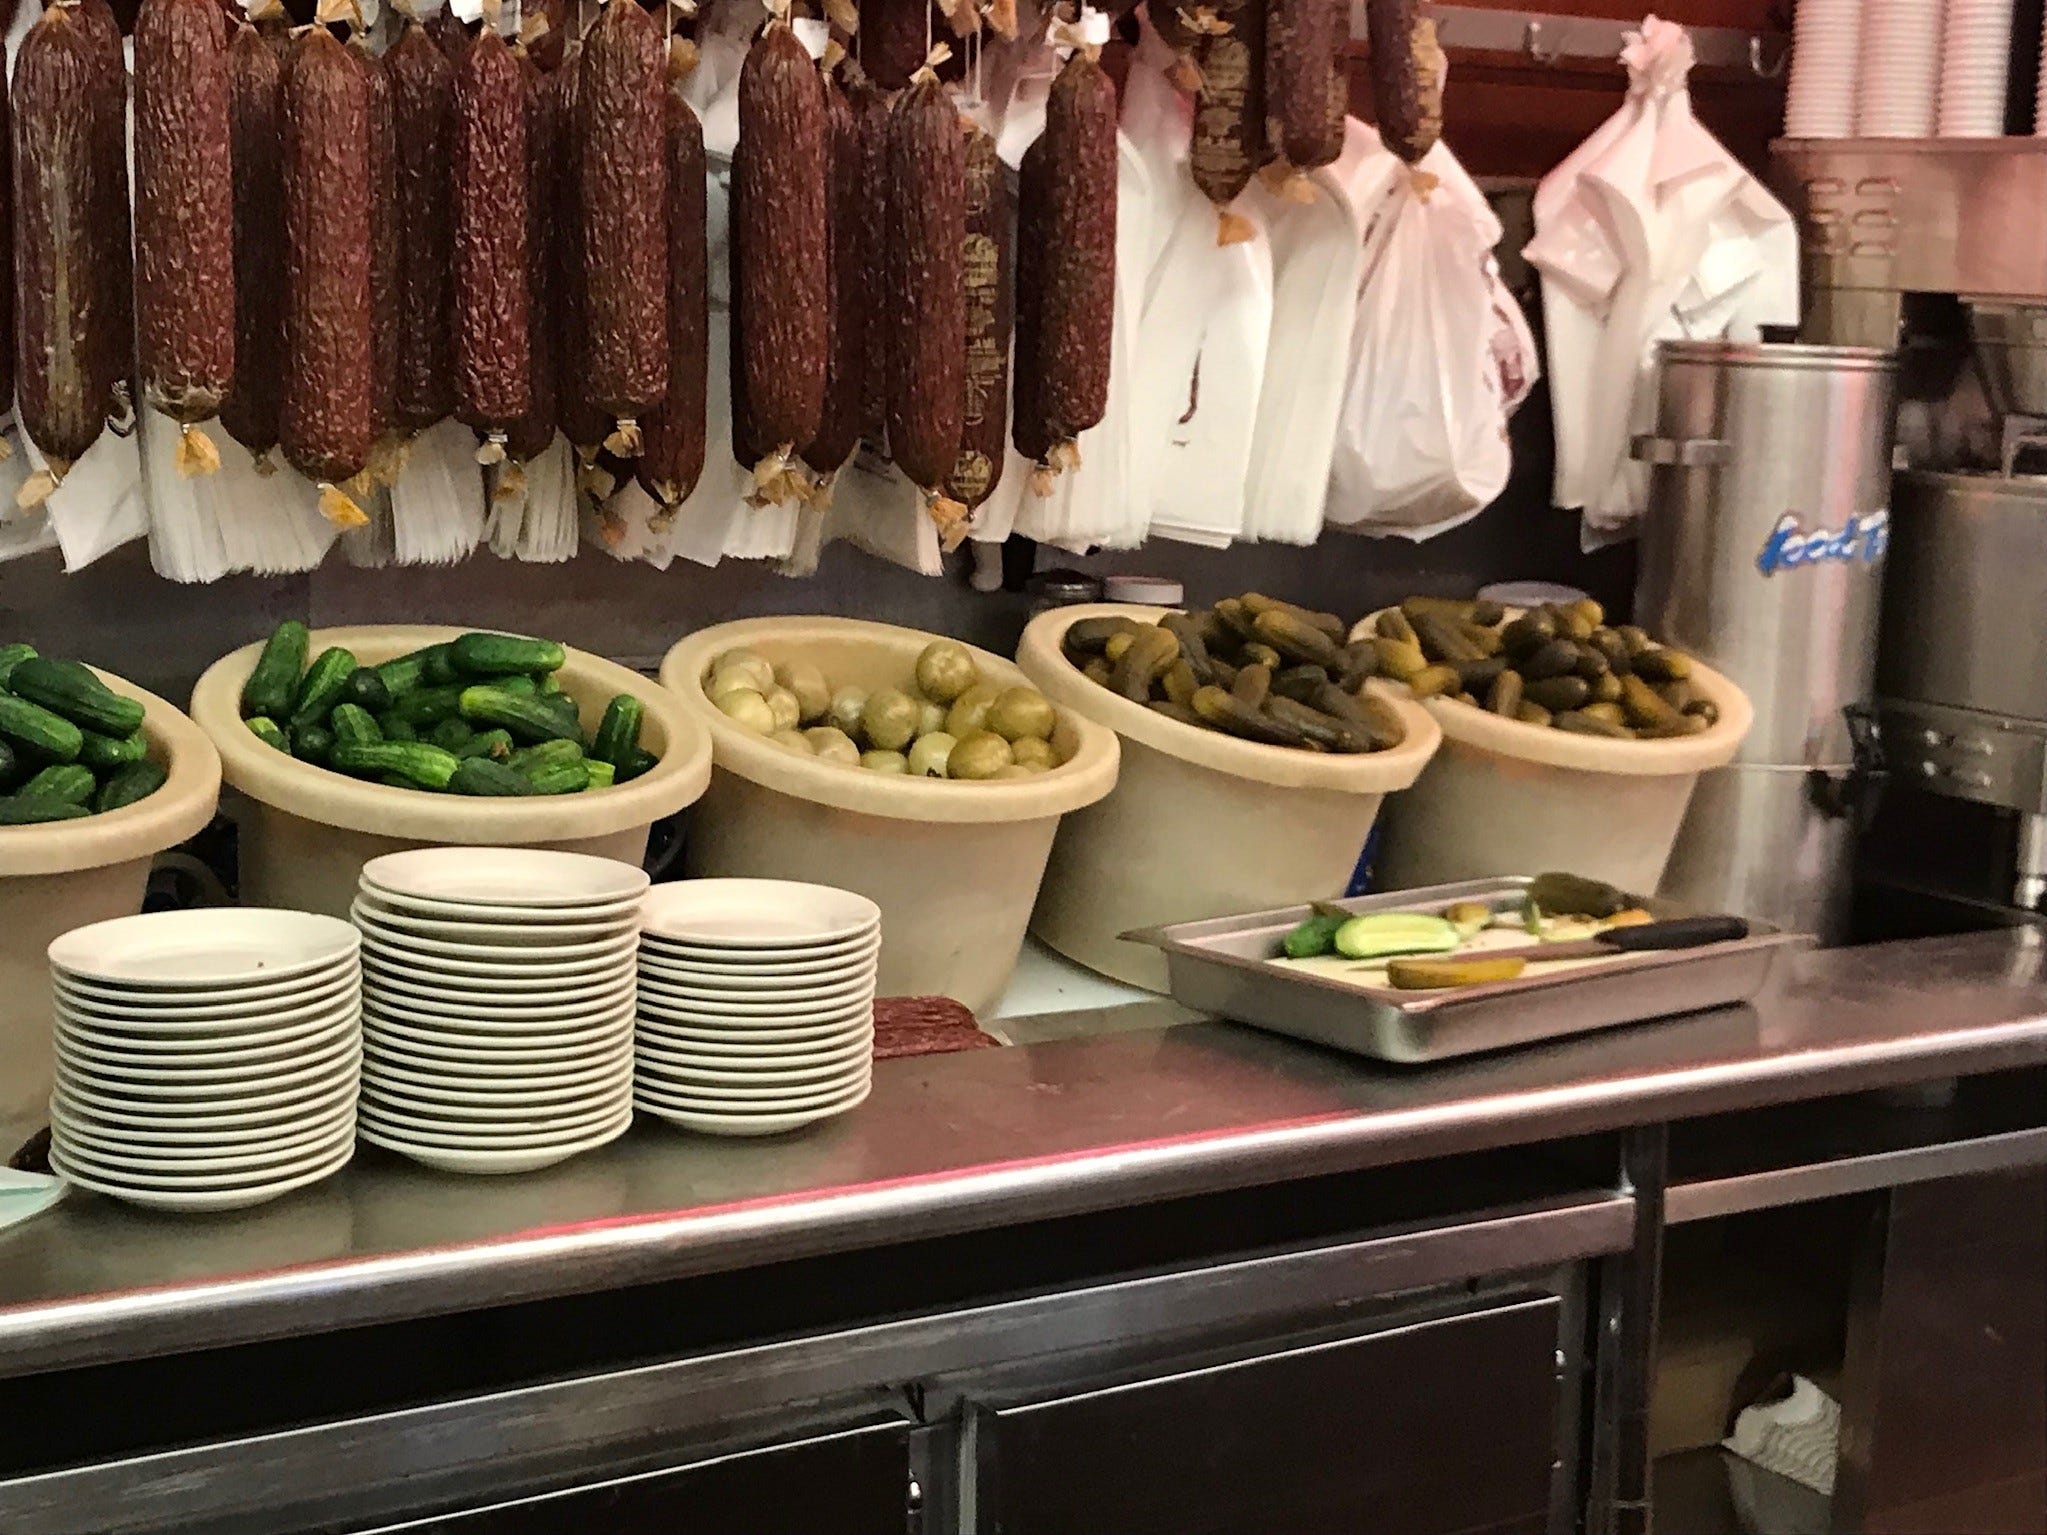 Salamis, pickles and pickled green tomatoes wait to be dispensed from behind the counter.